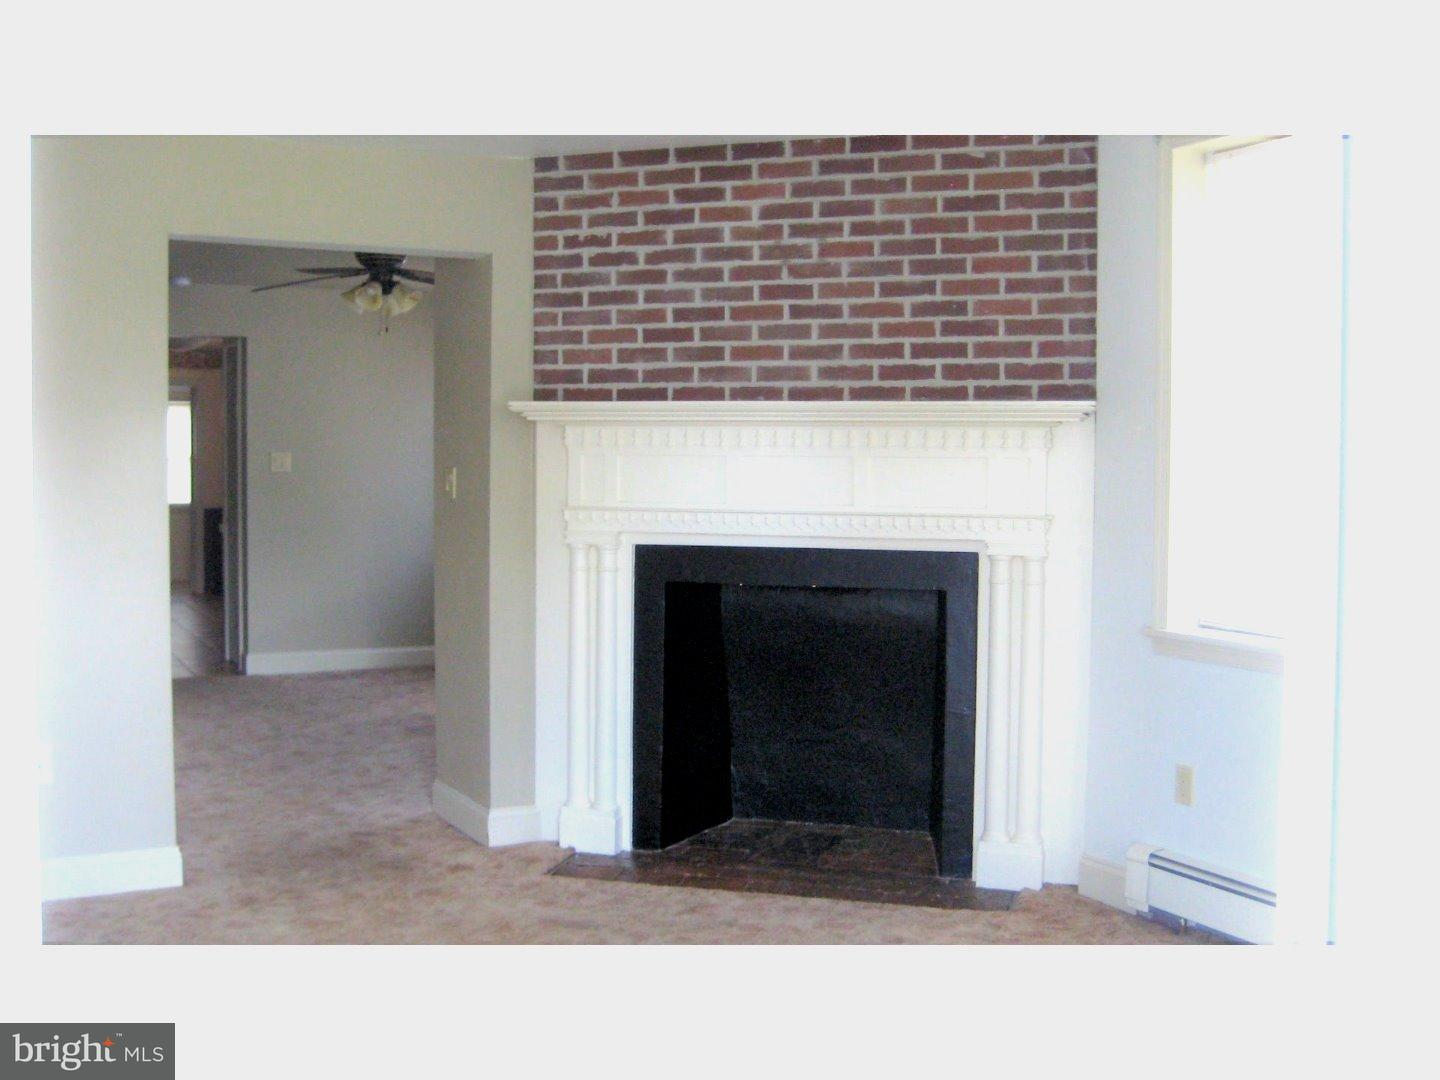 52 N FRONT ST, WOMELSDORF - Listed at $139,500, WOMELSDORF